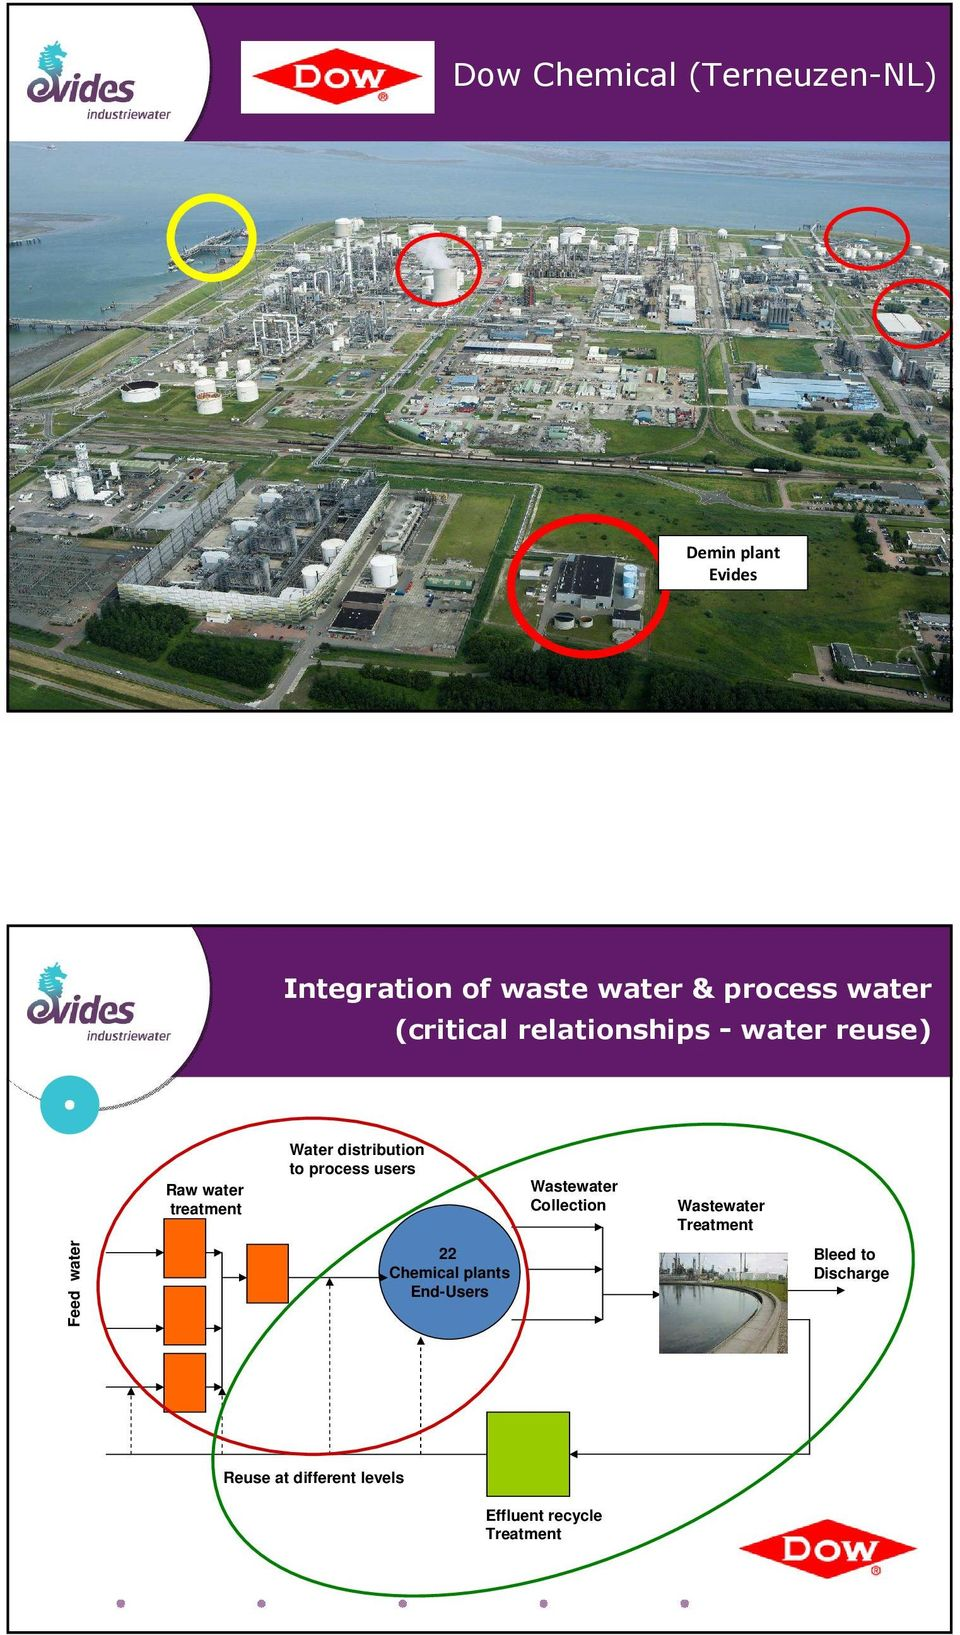 treatment Water distribution to process users Waste Collection Waste Treatment Feed 22